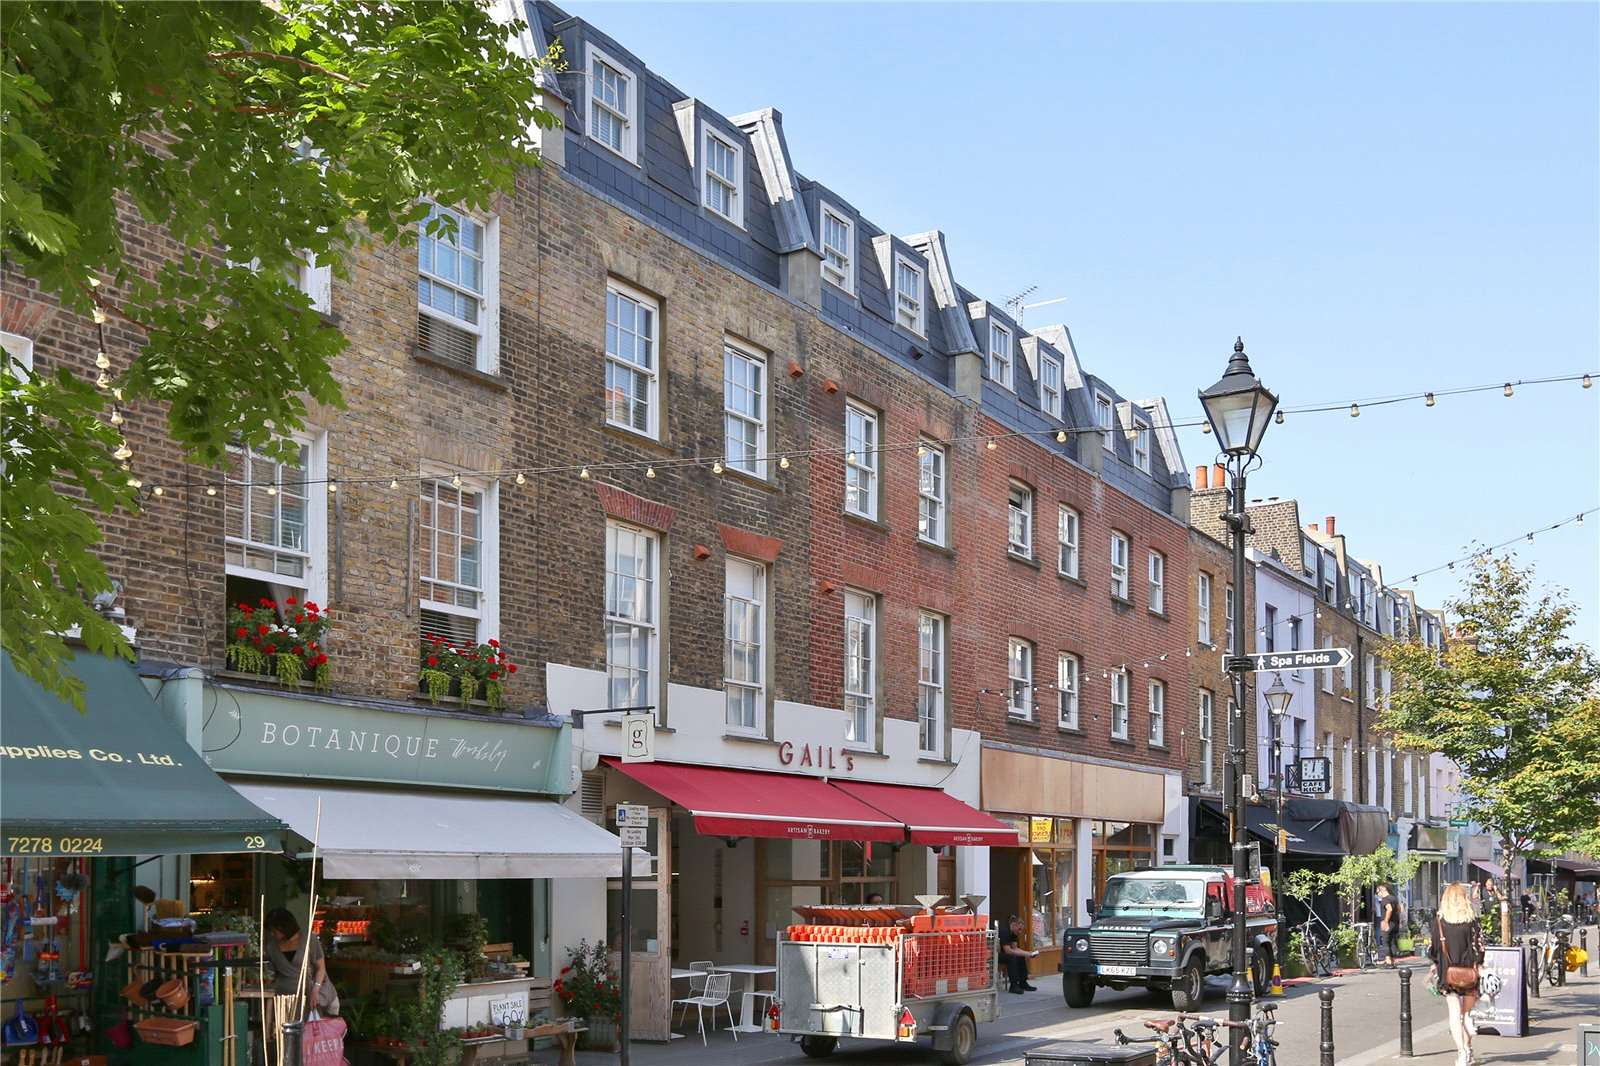 Finding Office Space in Clerkenwell - Why rent an office space in Clerkenwell?